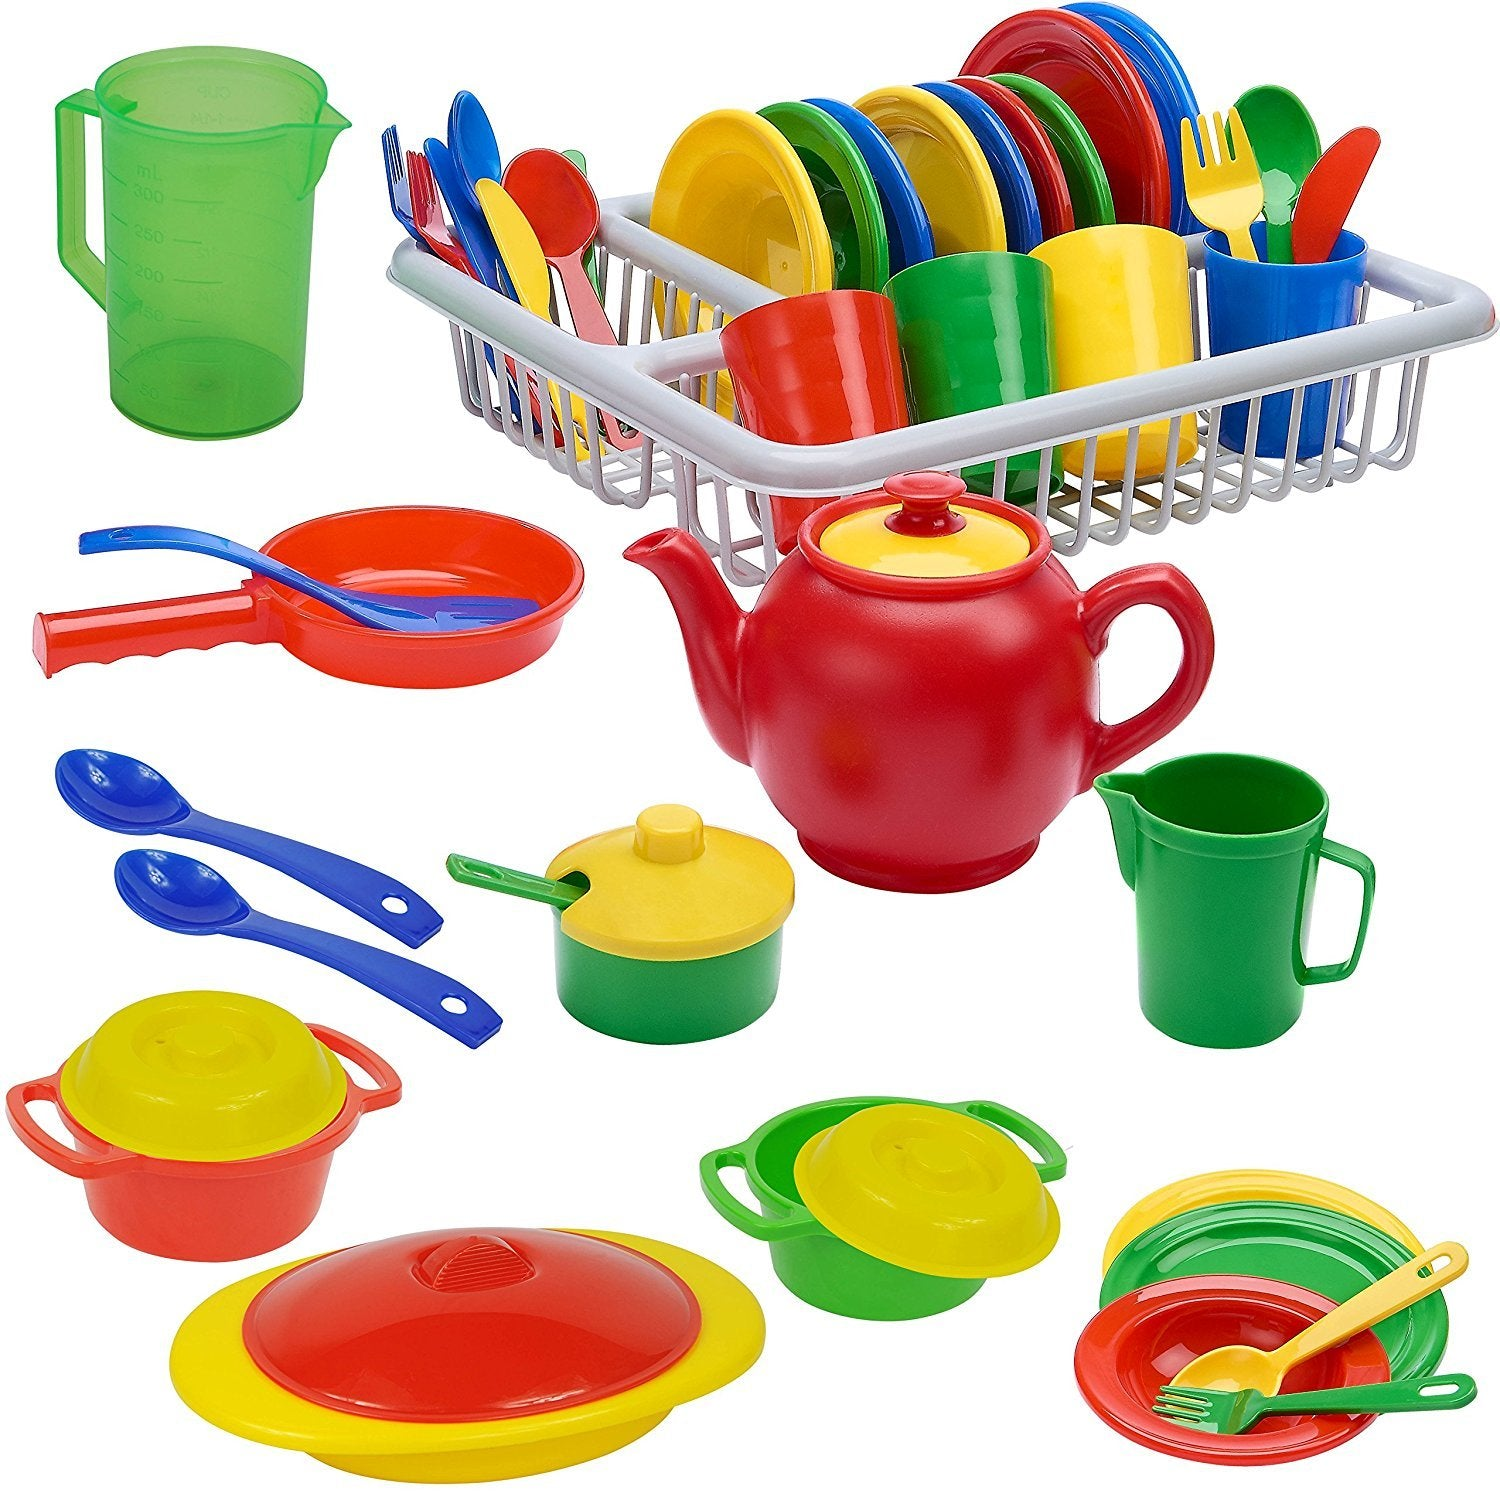 IQ Toys Incredibly Realistic Pretend Play Dish Set - Complete Service For 4 With Drainer; Bright Colored Set of 40 Pieces